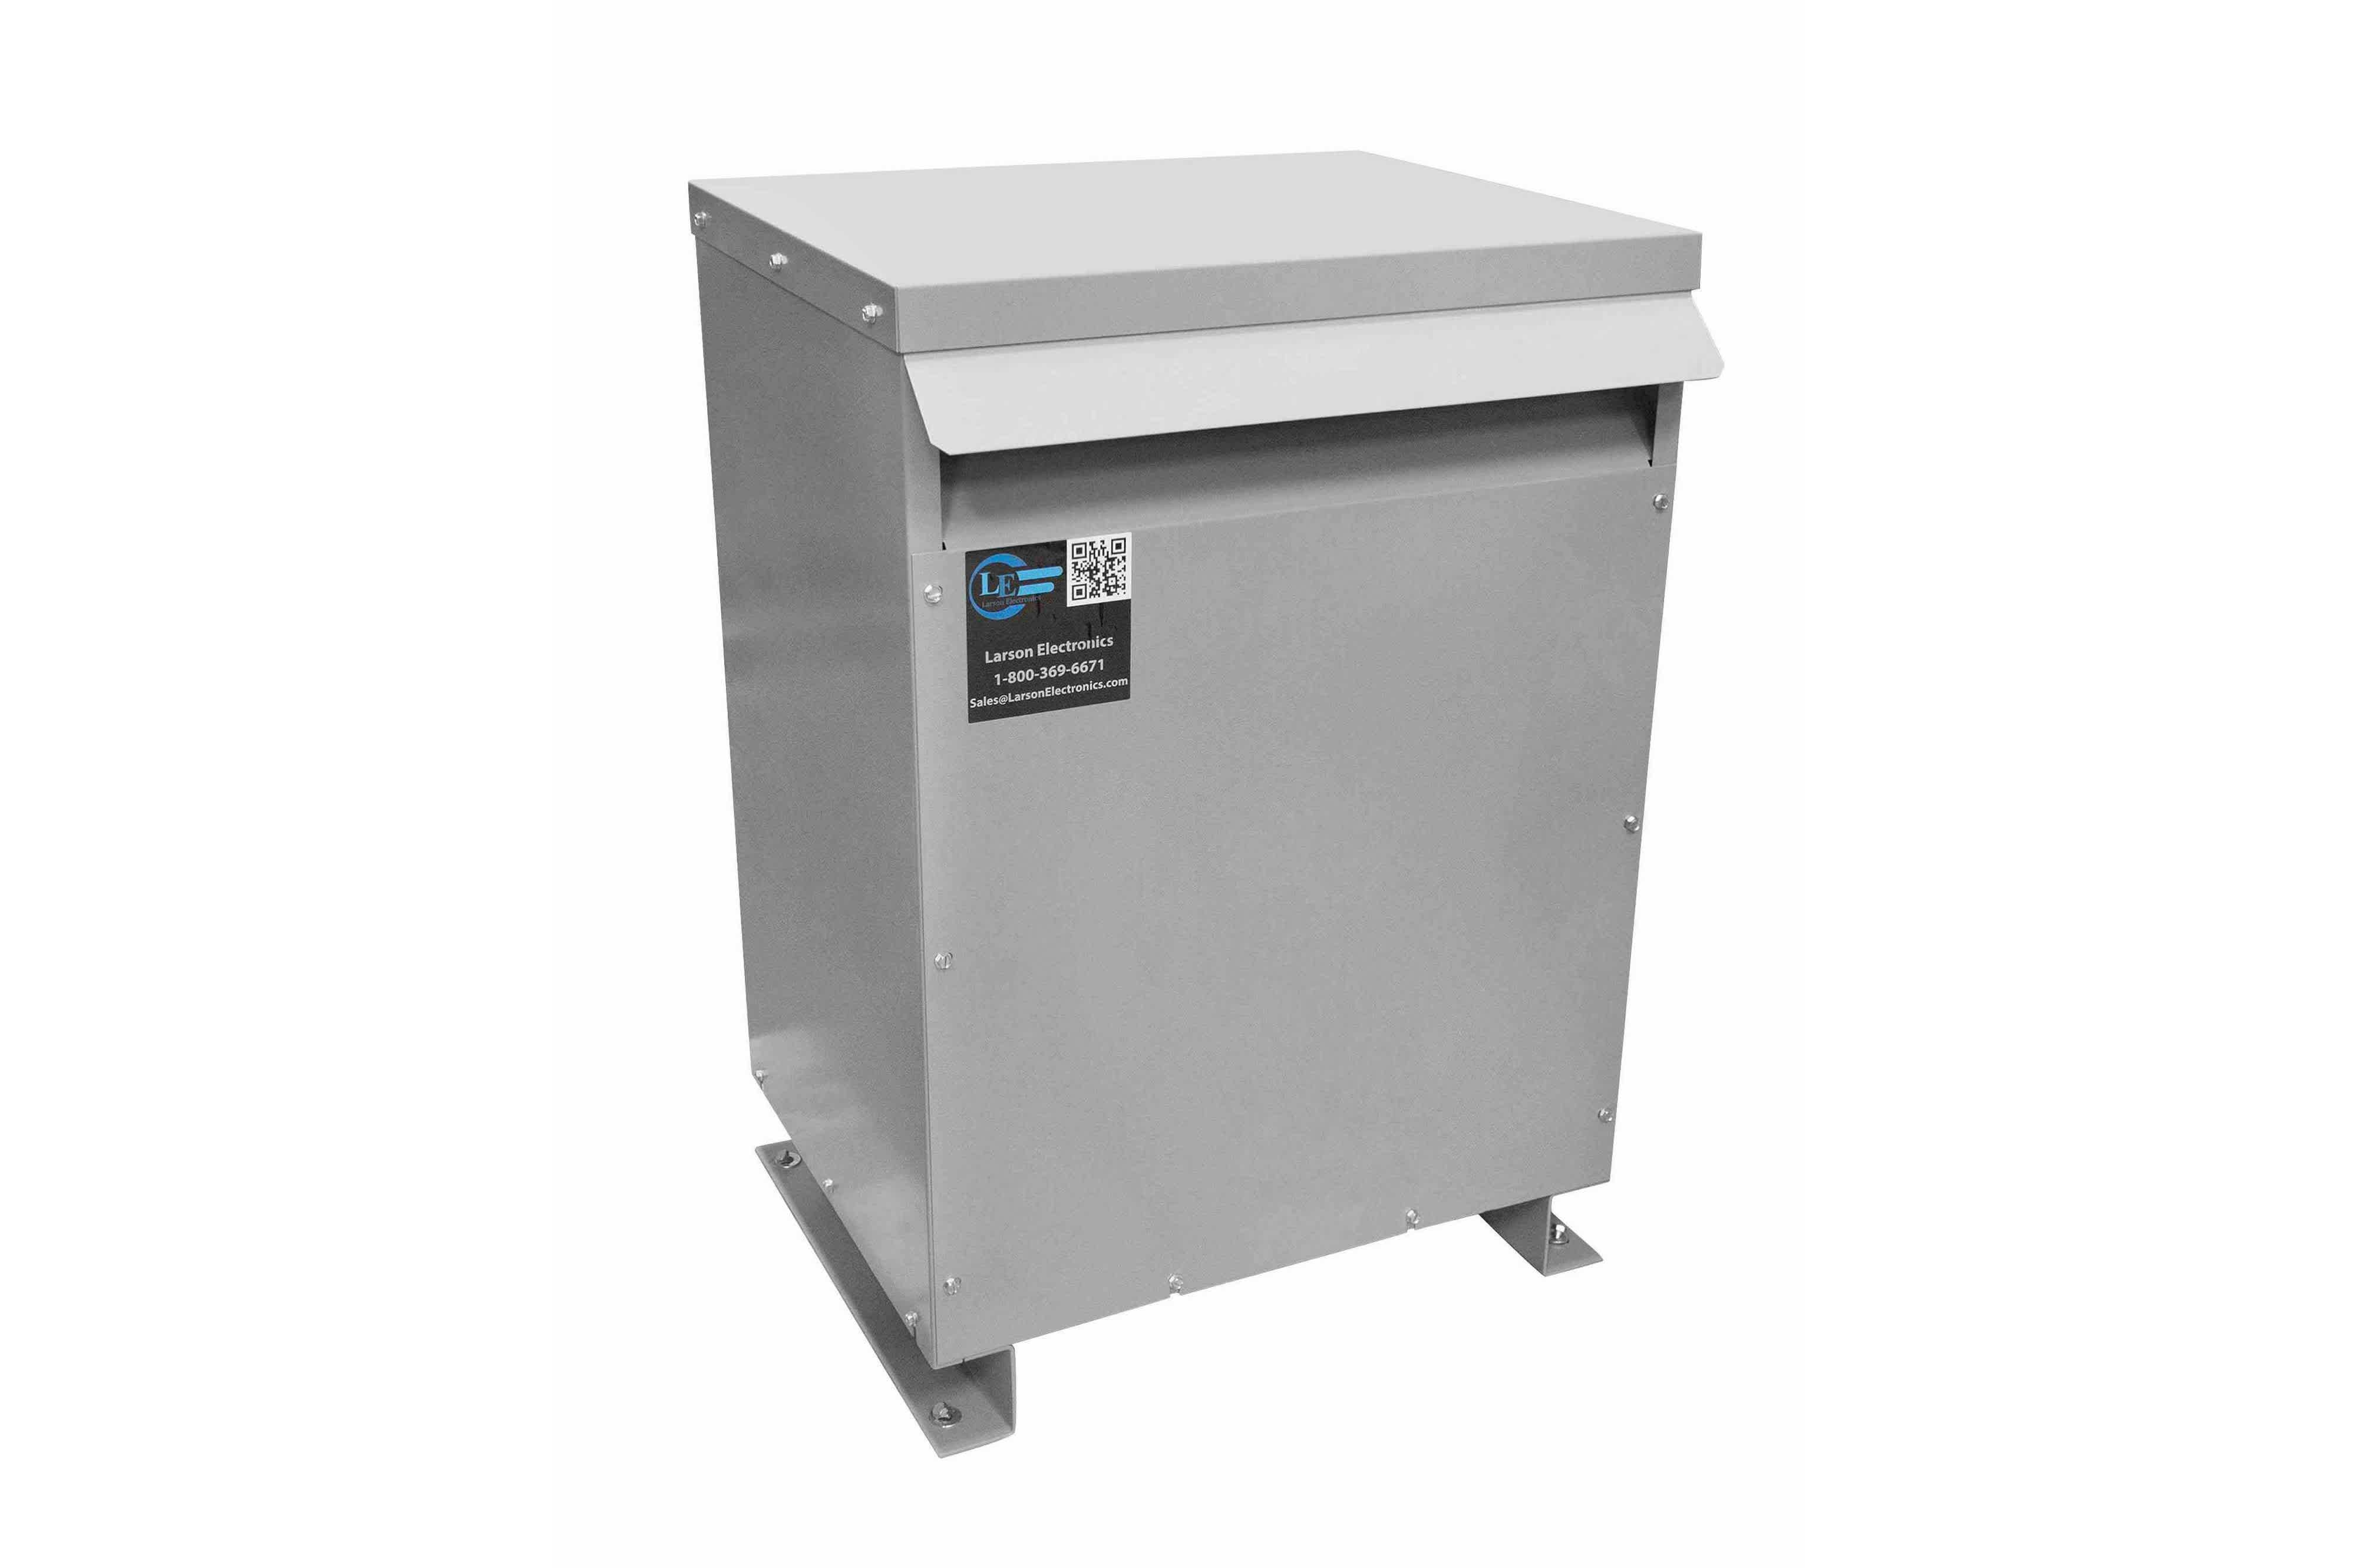 137.5 kVA 3PH Isolation Transformer, 480V Wye Primary, 575Y/332 Wye-N Secondary, N3R, Ventilated, 60 Hz